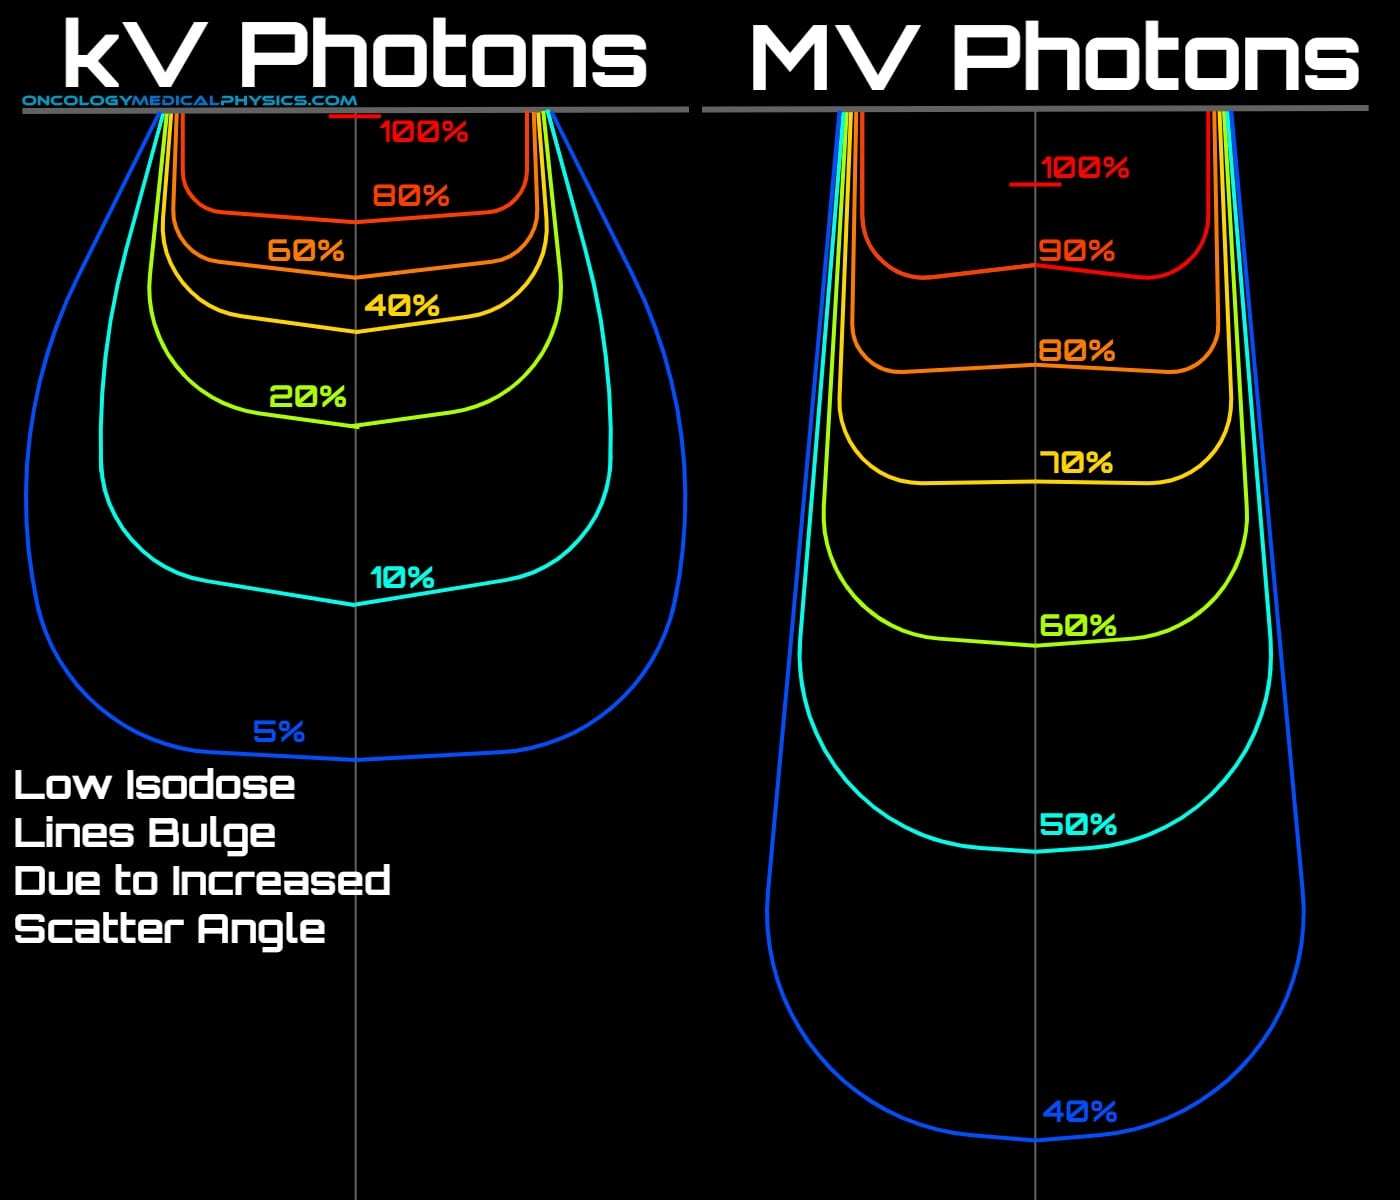 Photon energy impacts the shape of dose distributions in the kV and MV range.